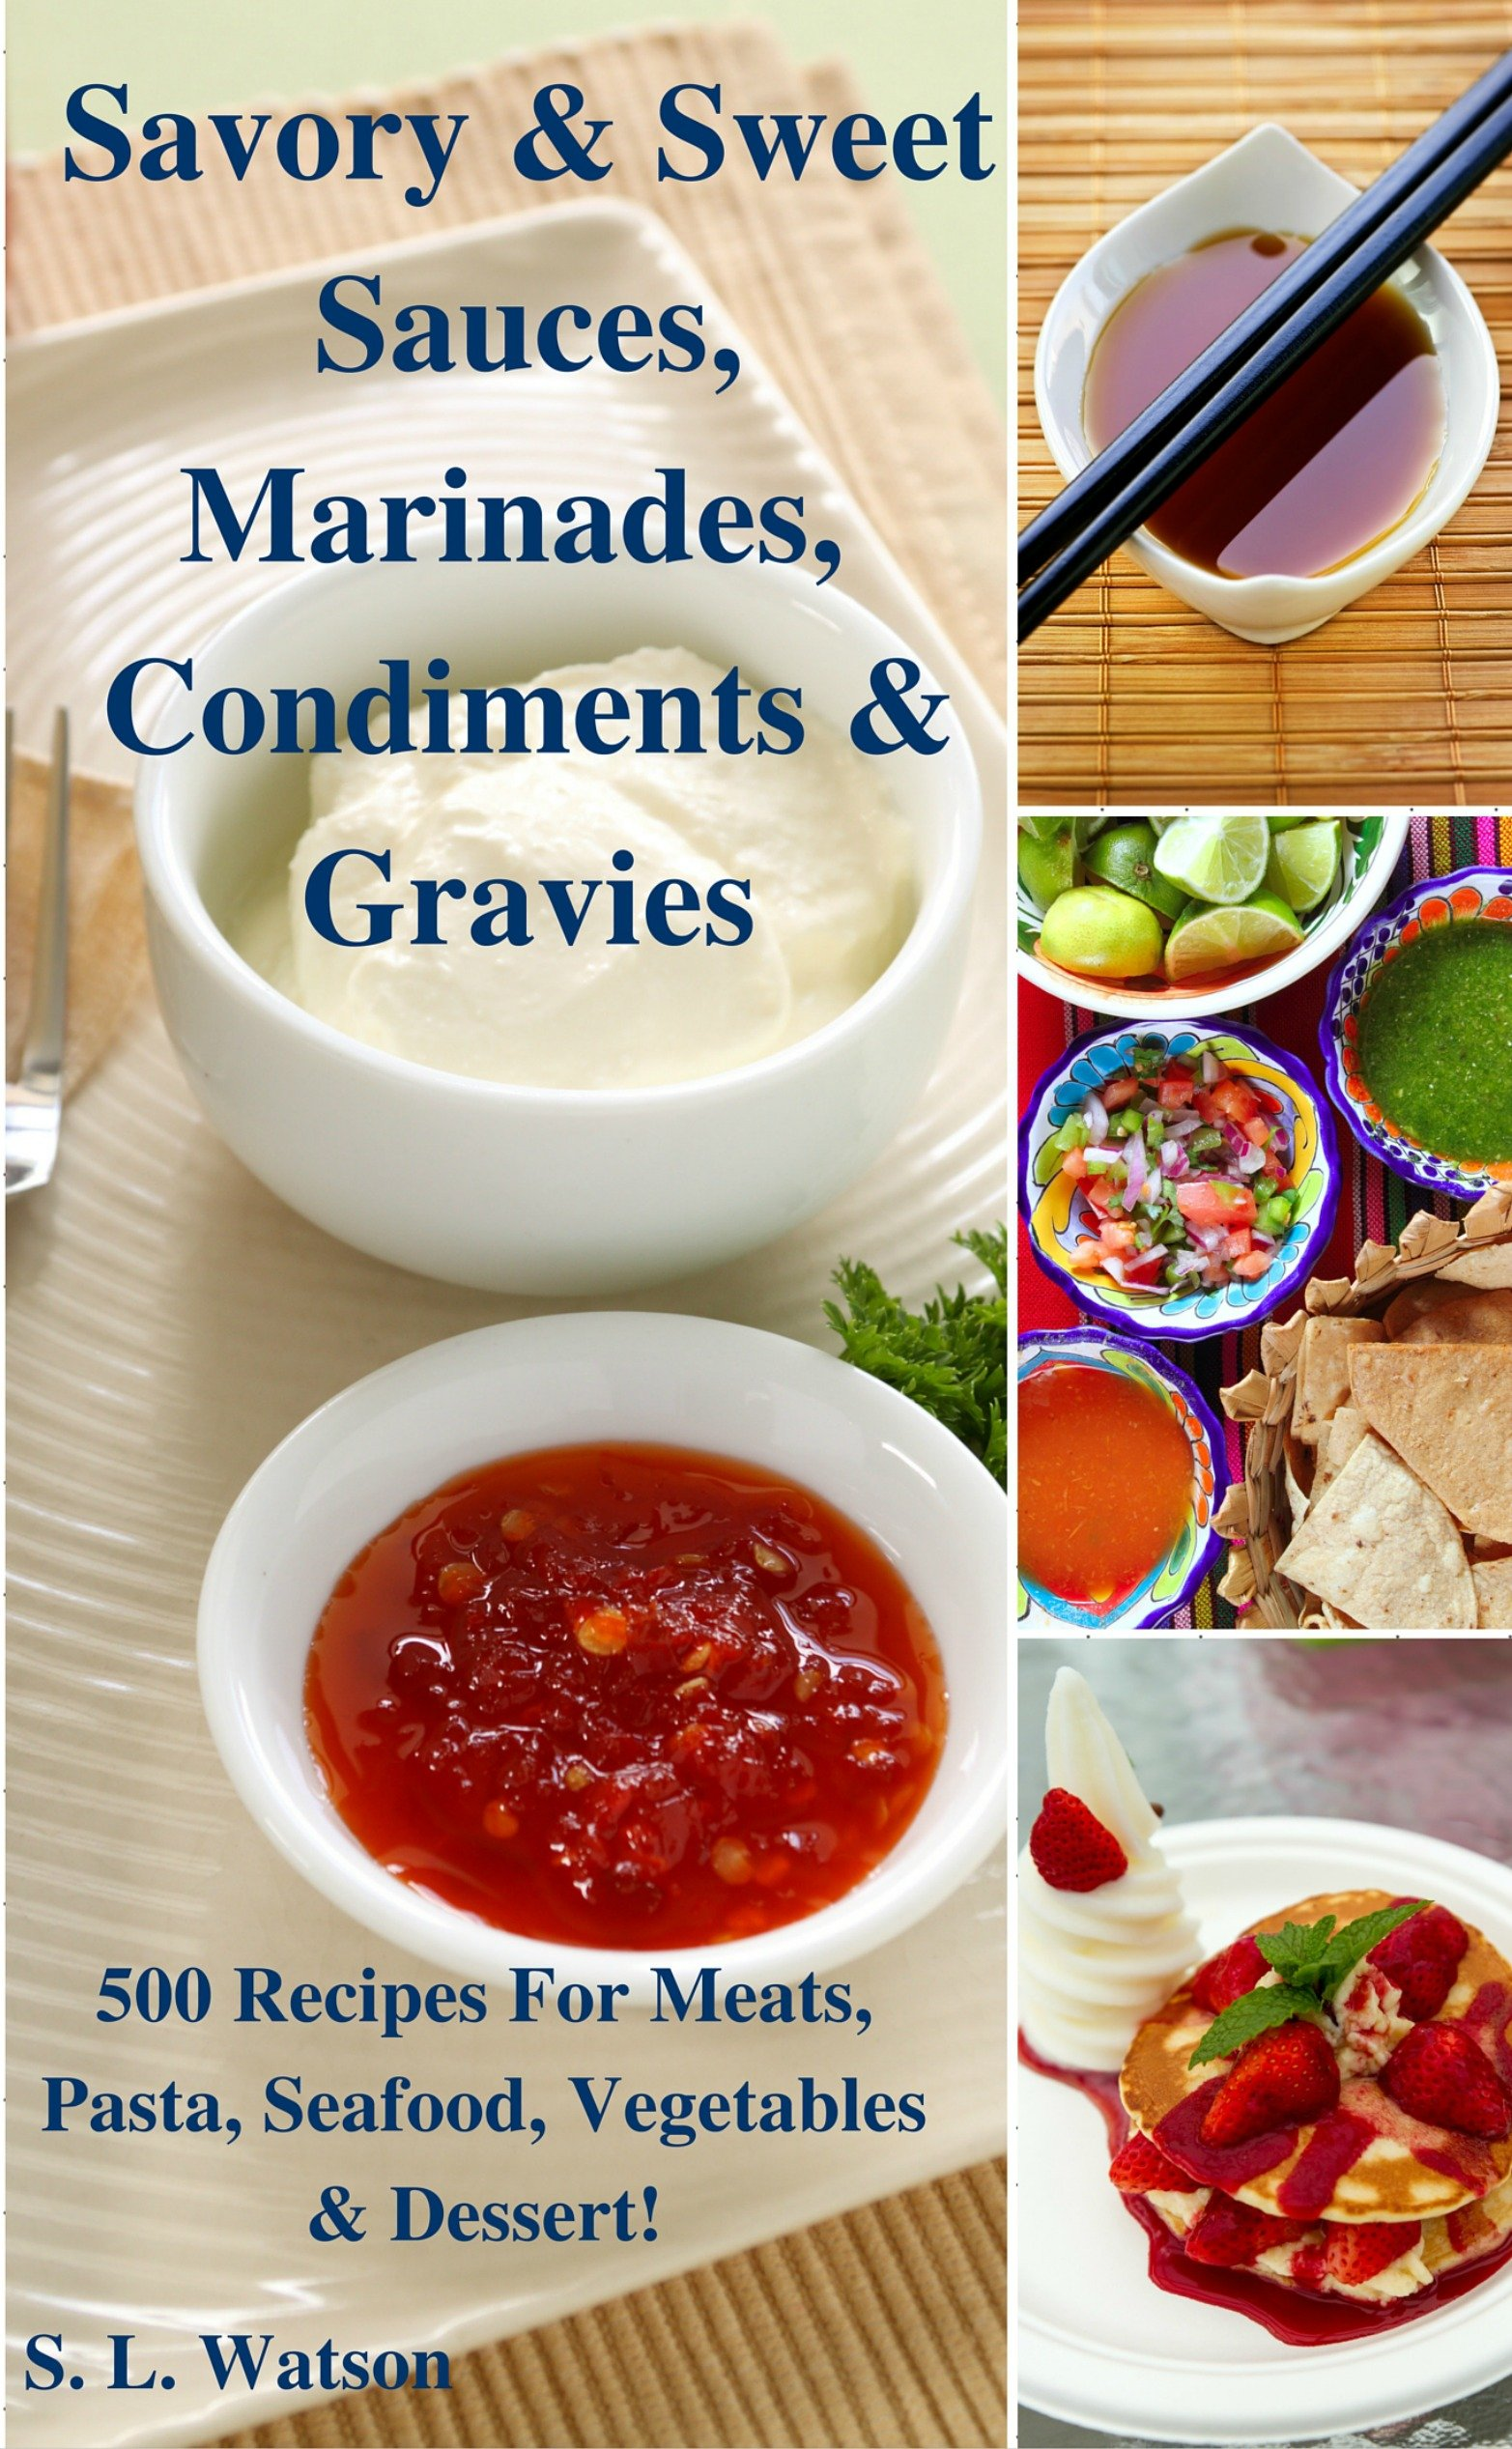 Savory & Sweet Sauces, Marinades, Condiments & Gravies: 500 Recipes For Meats, Pasta, Seafood, Vegetables & Desserts! (Sou...